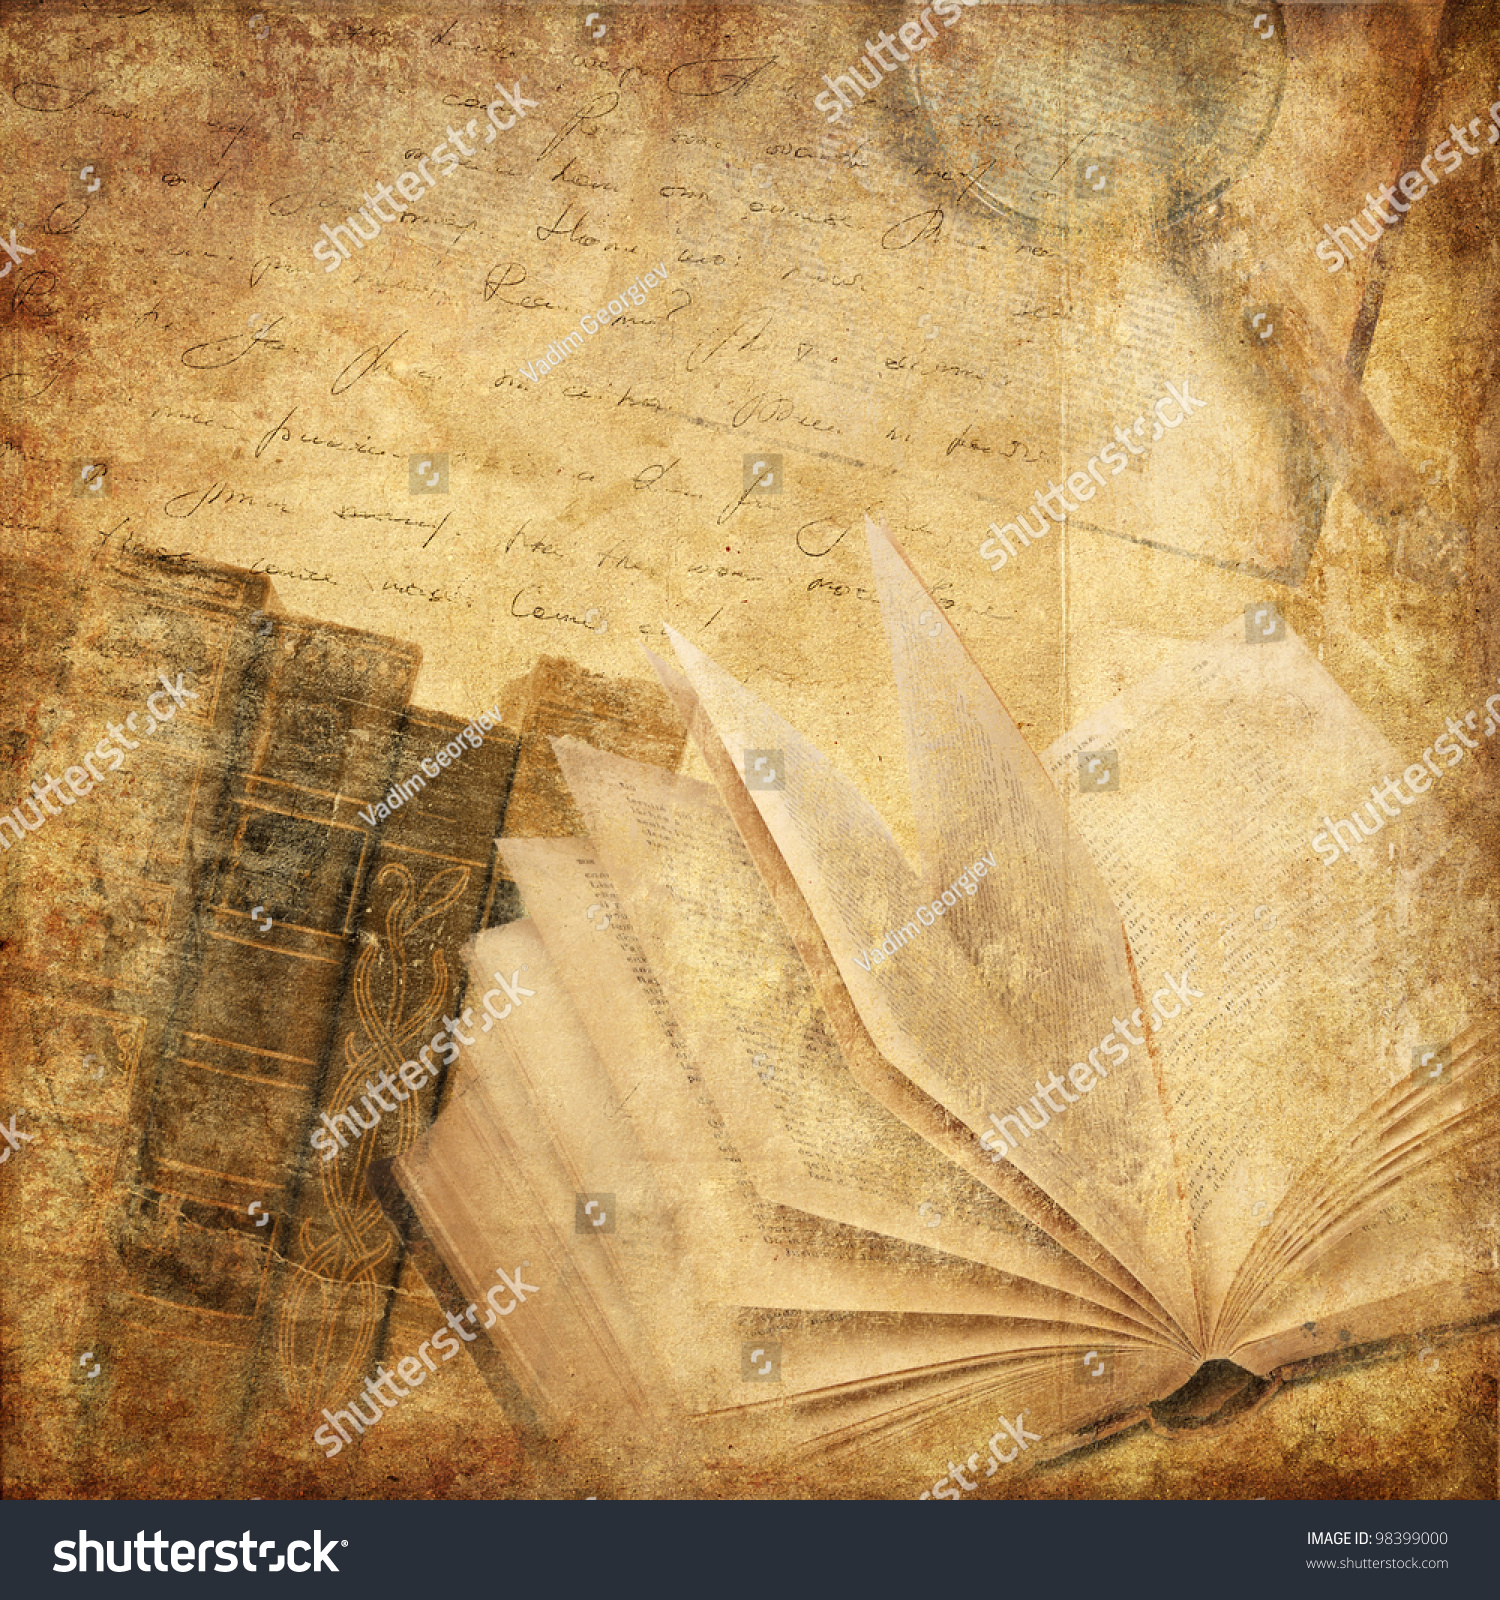 Vintage Background Old Books Stock Photo 98399000 - Shutterstock